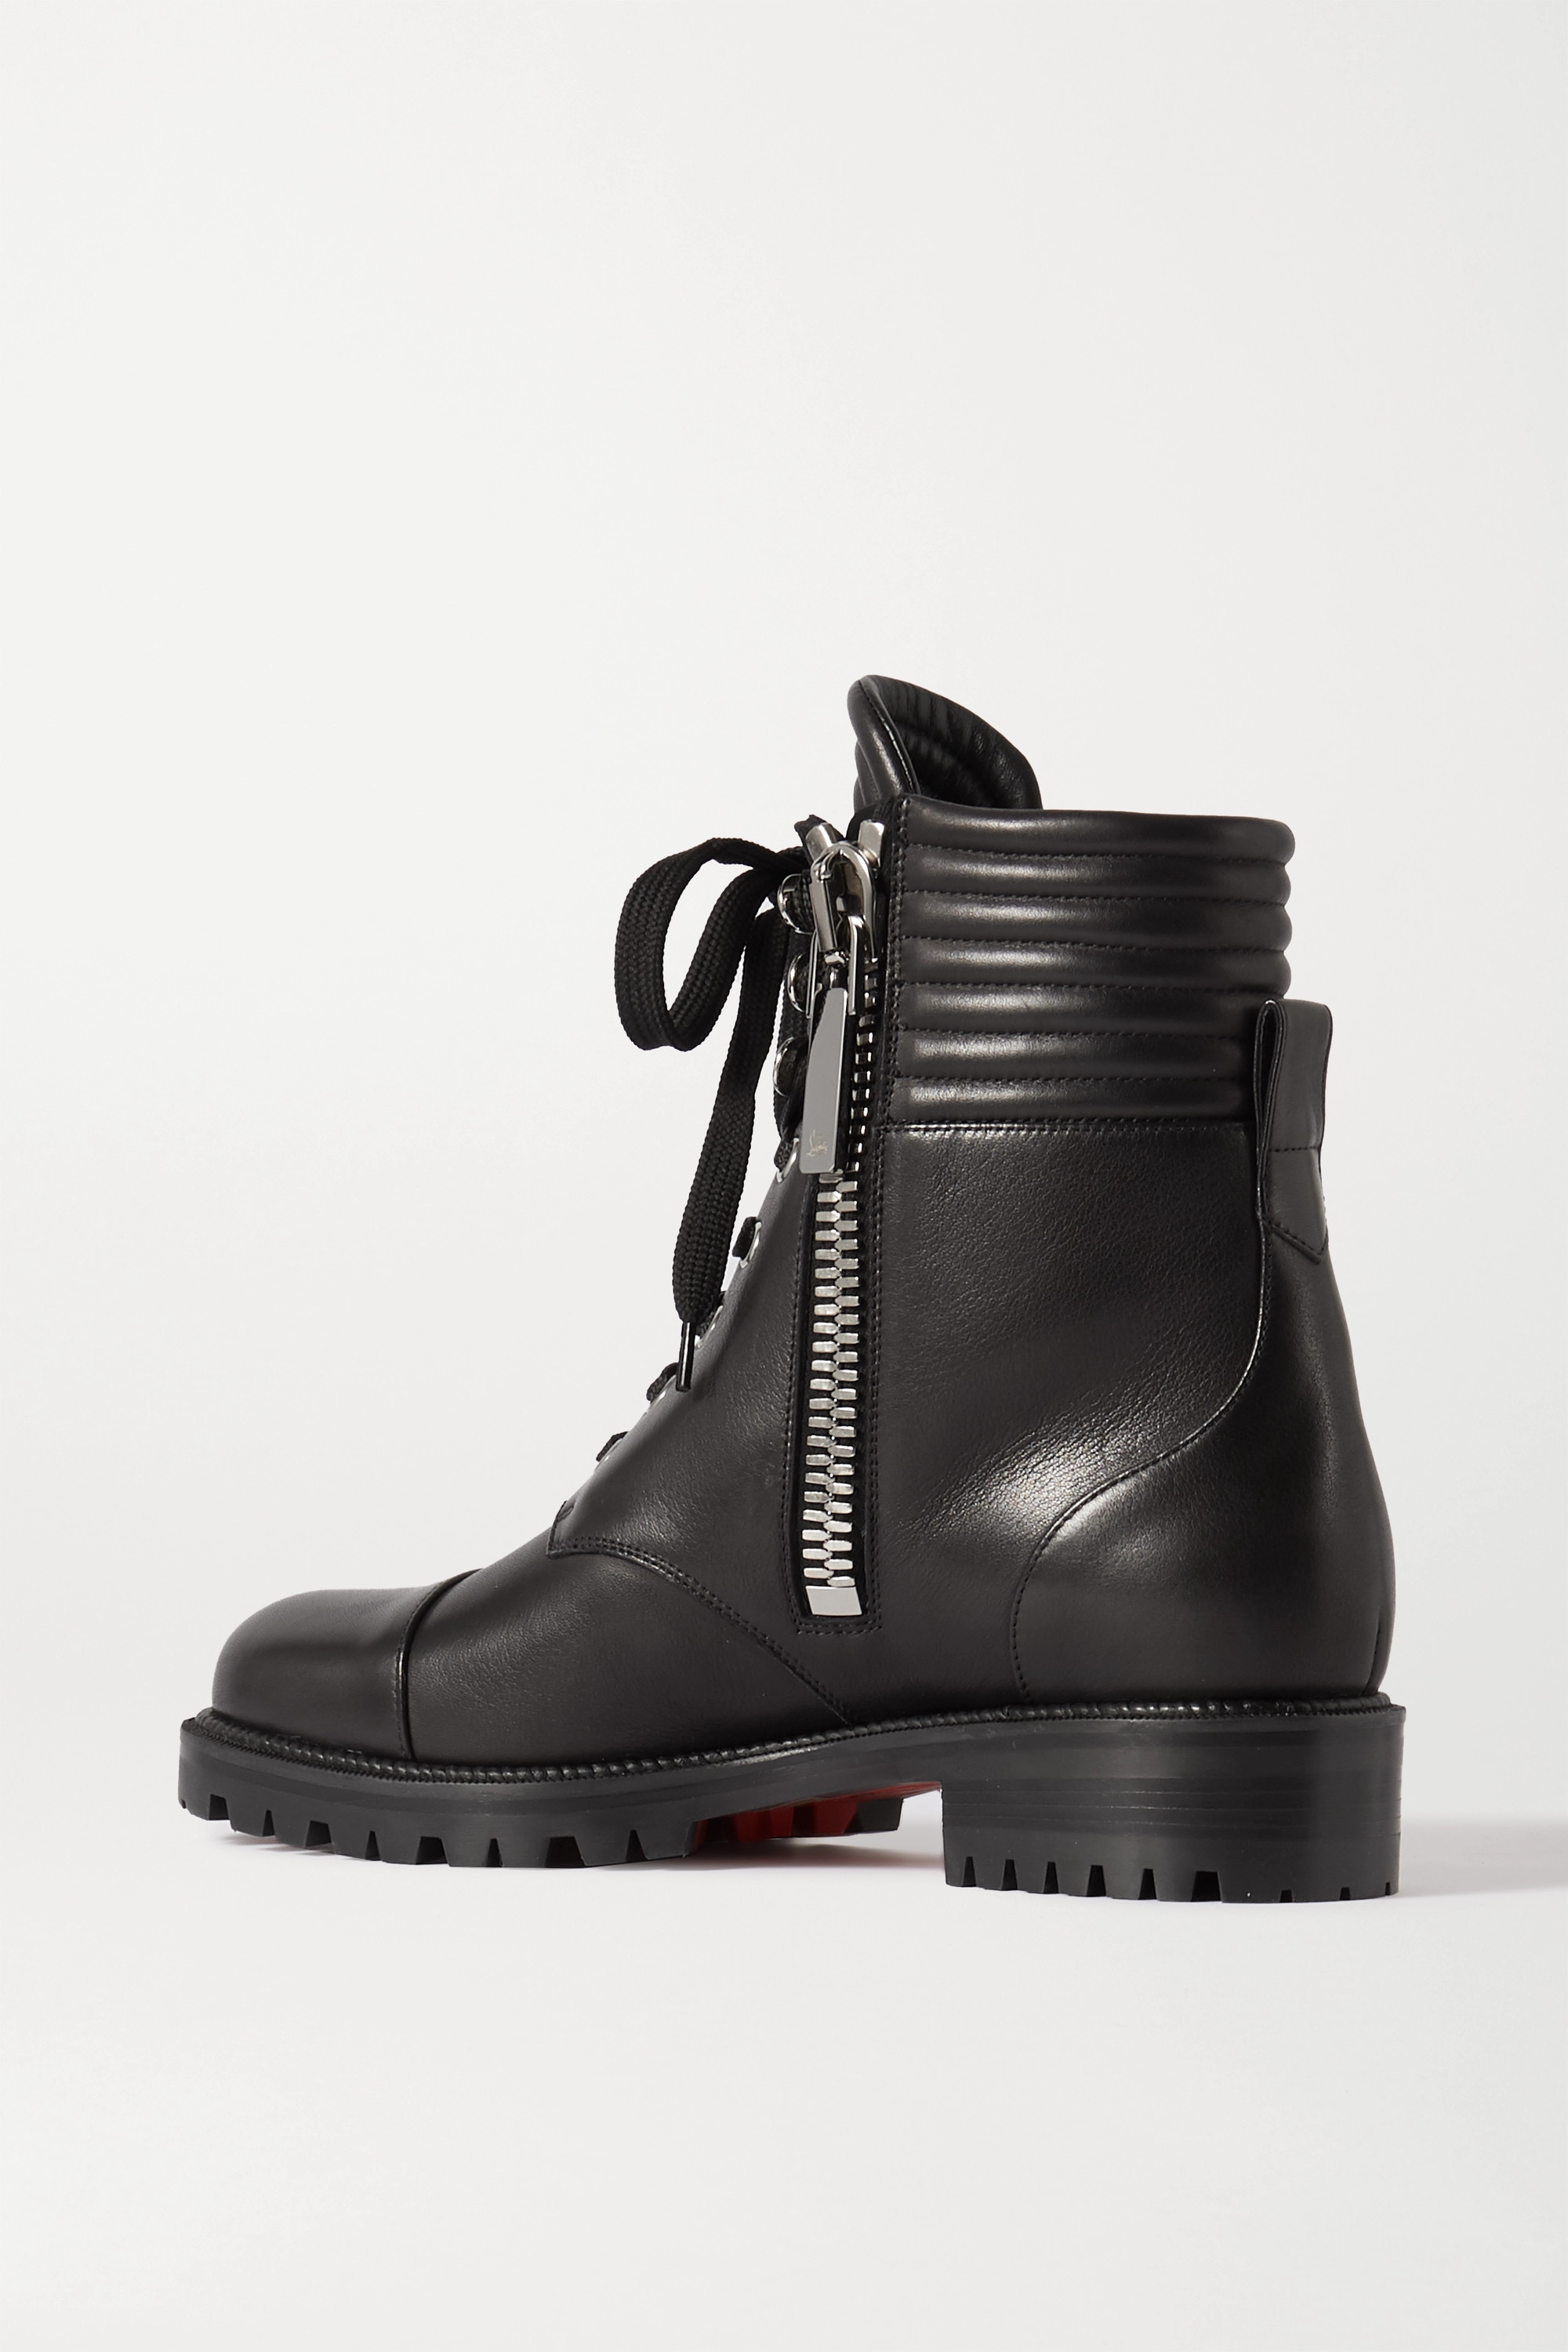 Christian Louboutin En Hiver lace-up leather ankle boots